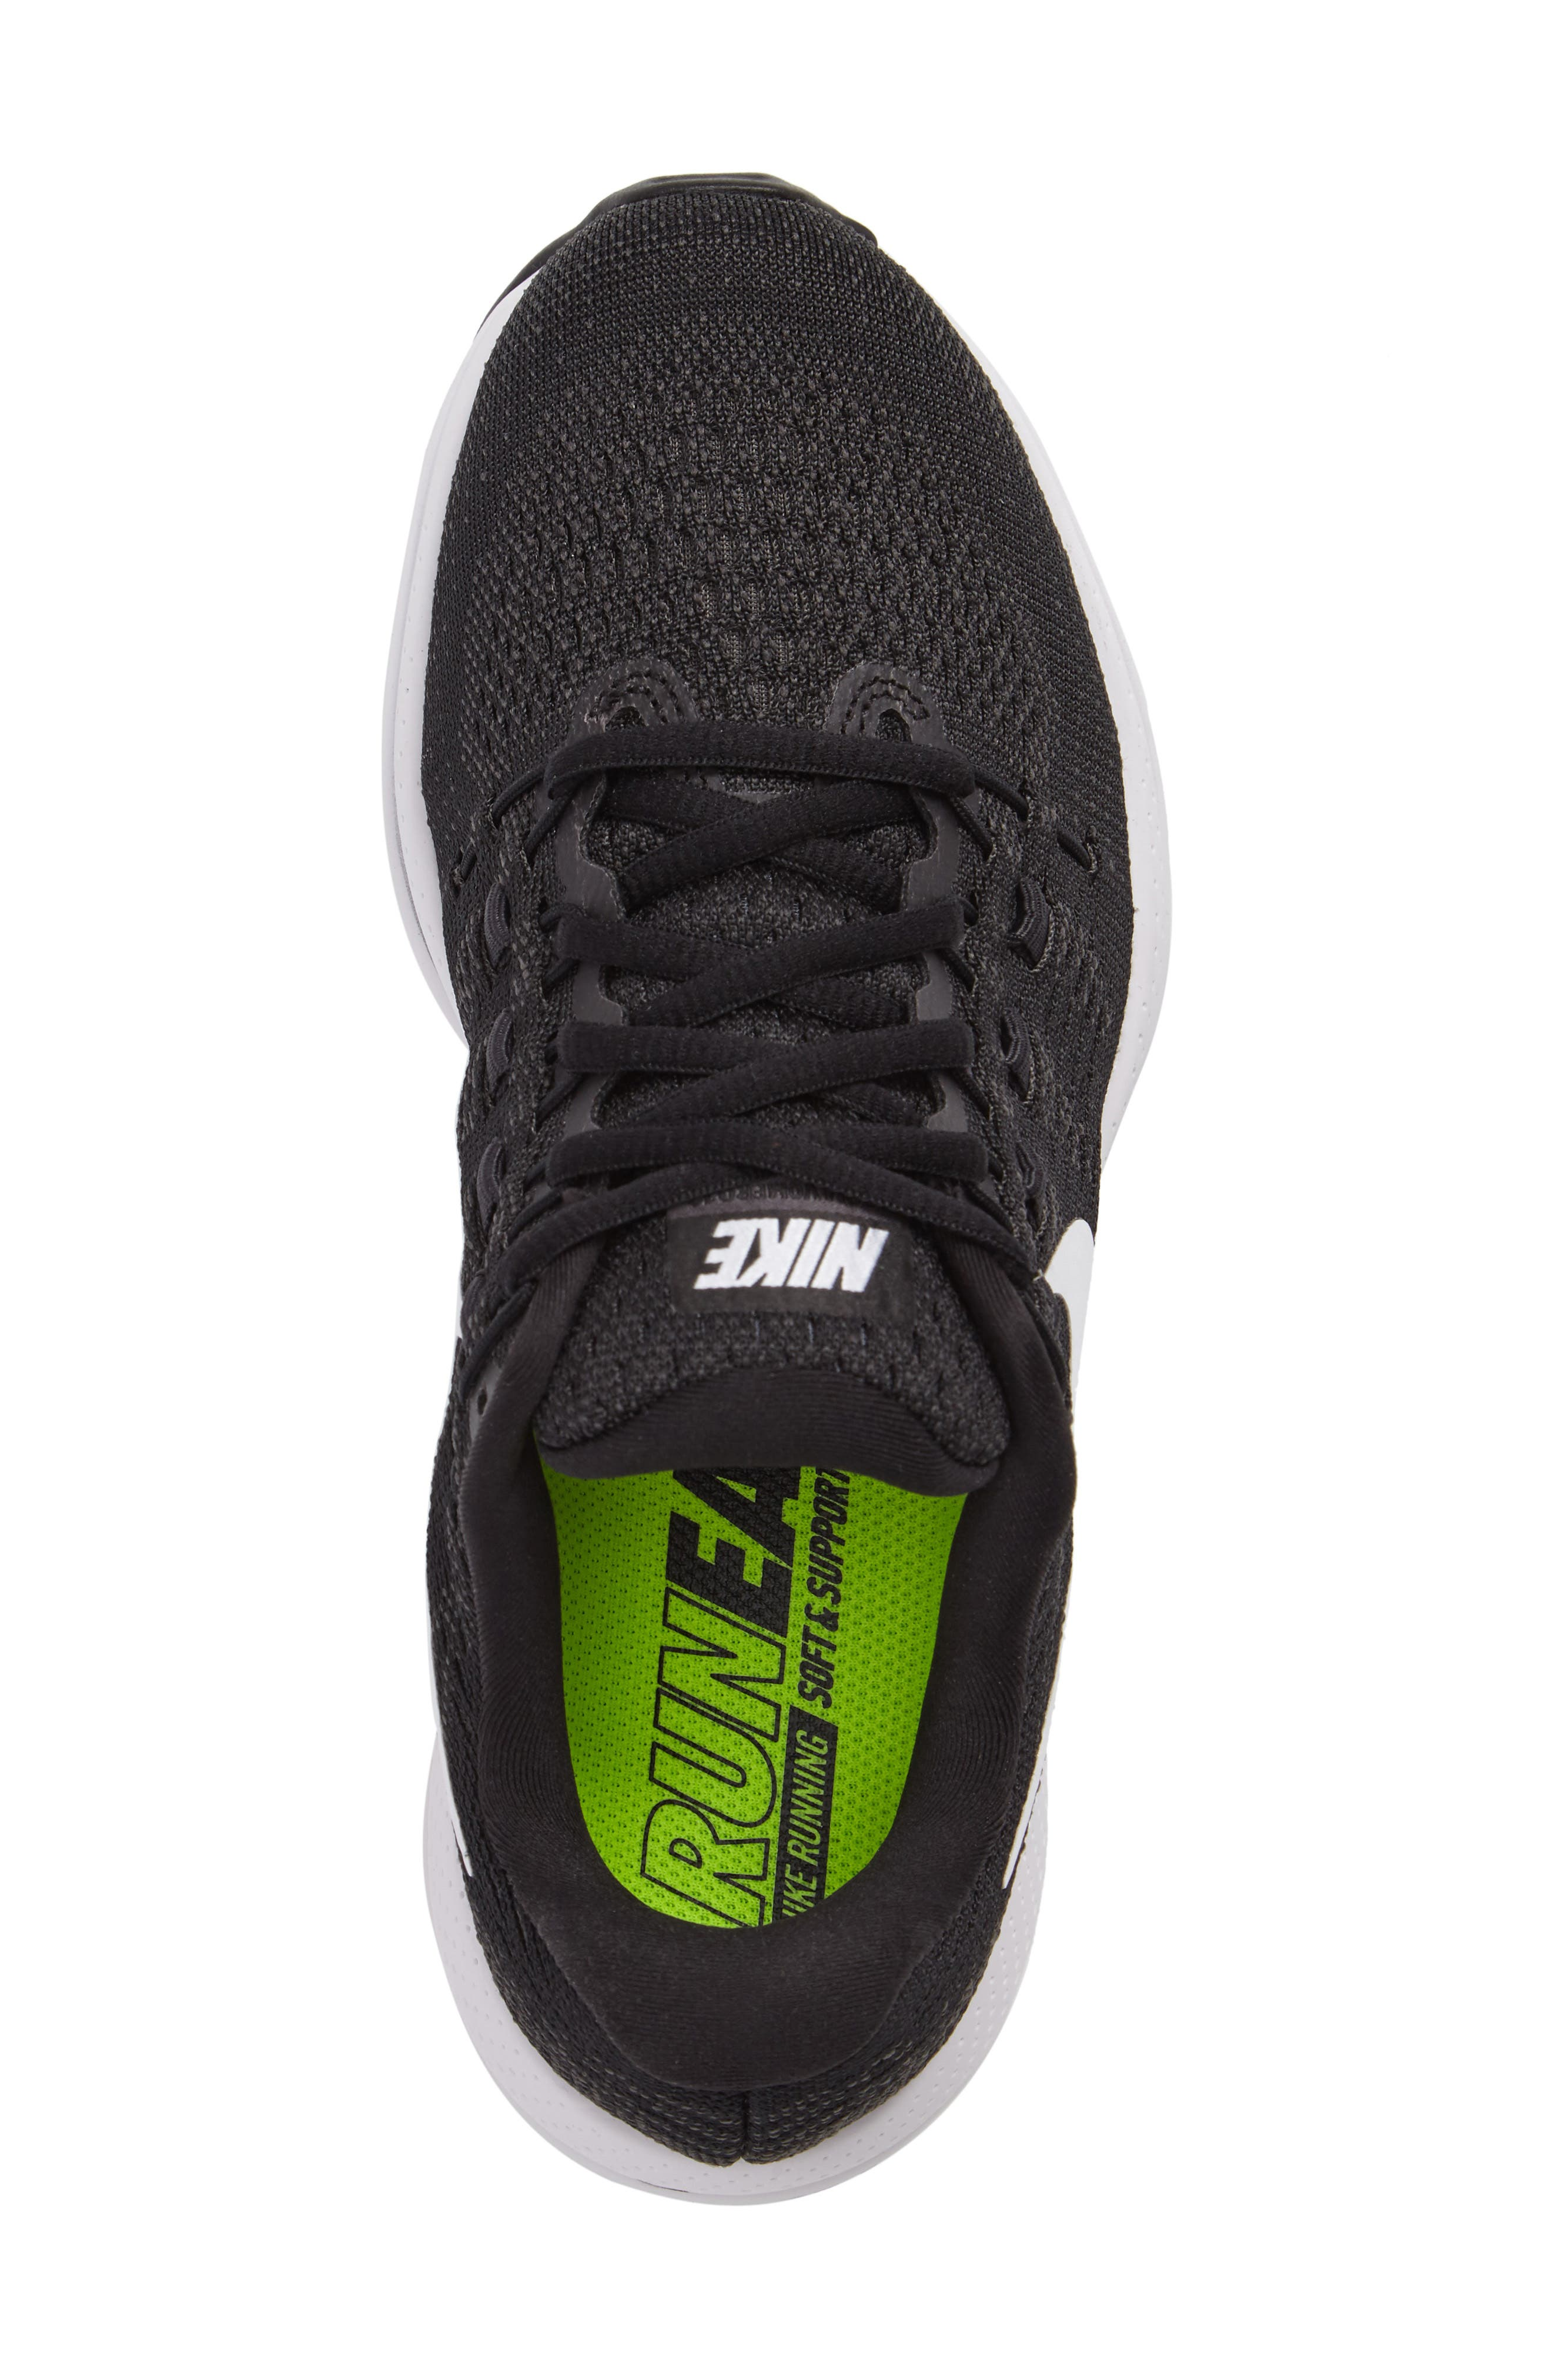 NIKE,                             Air Zoom Vomero 12 Running Shoe,                             Alternate thumbnail 5, color,                             001